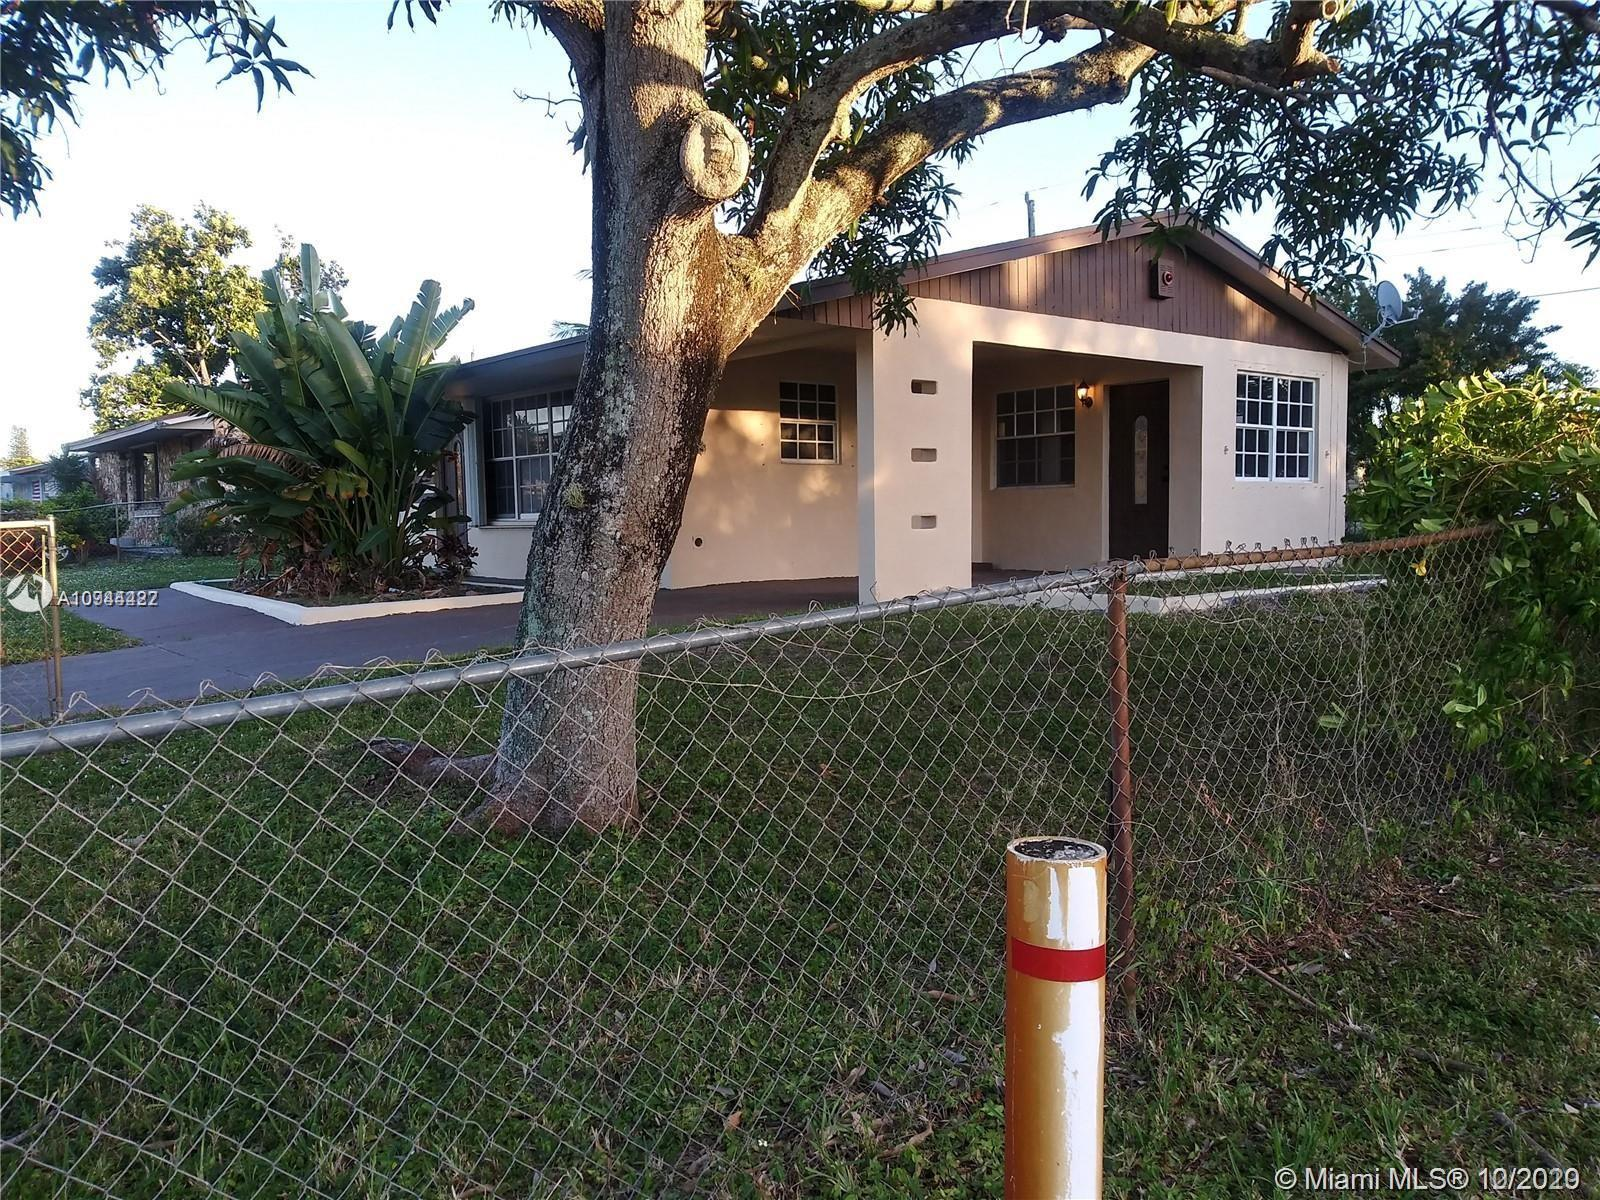 BEAUTIFUL THREE BEDROOM, TWO BATH, ONE CAR GARAGE HOME! GREAT FOR FIRST TIME HOME BUYER!